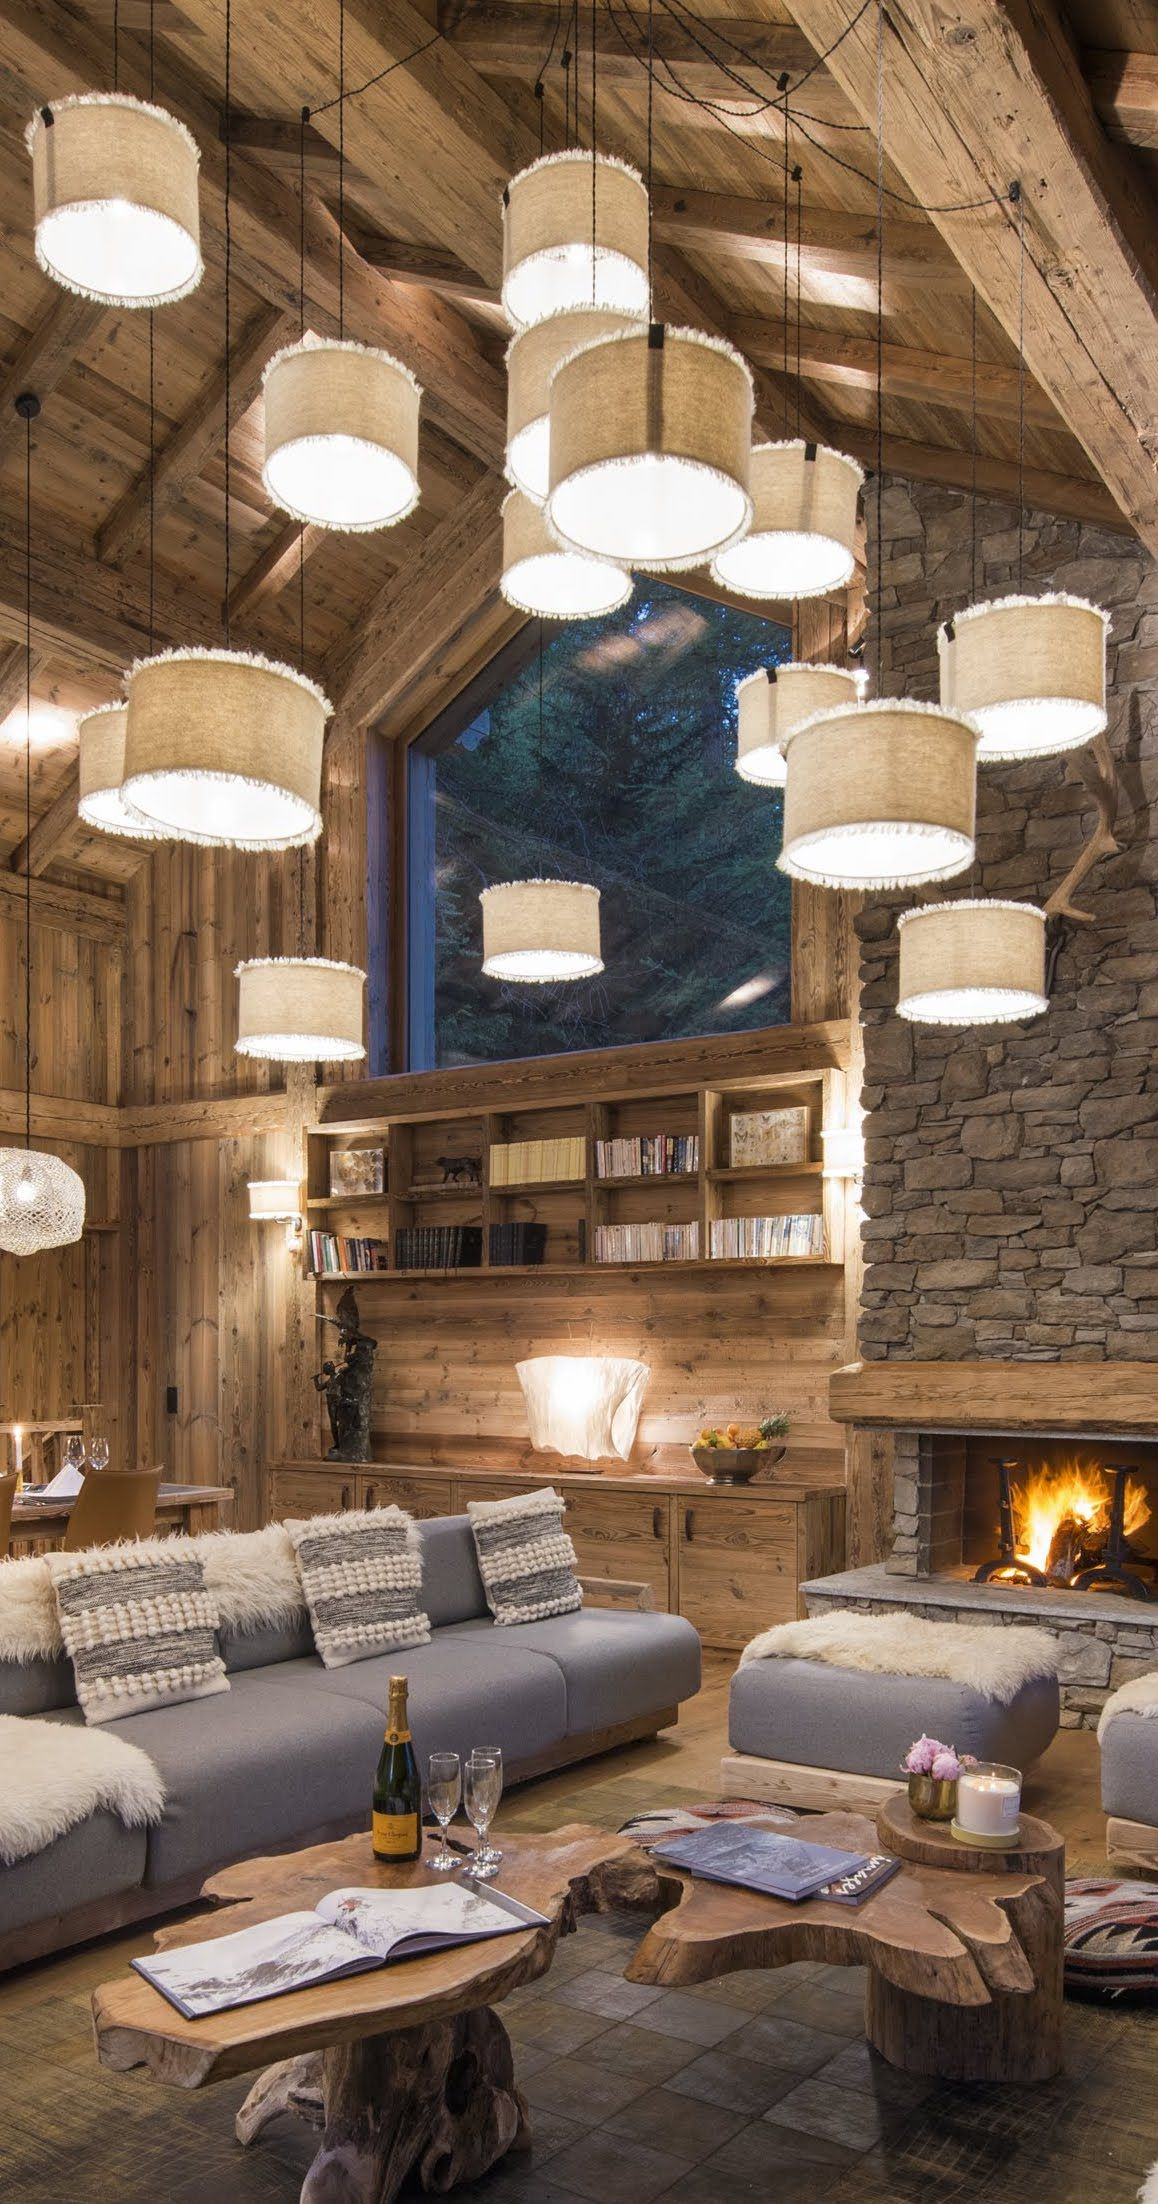 The Farmhouse Val D Isere Chalet Inoko Val D Isère French Alps Chalets Living Rooms In